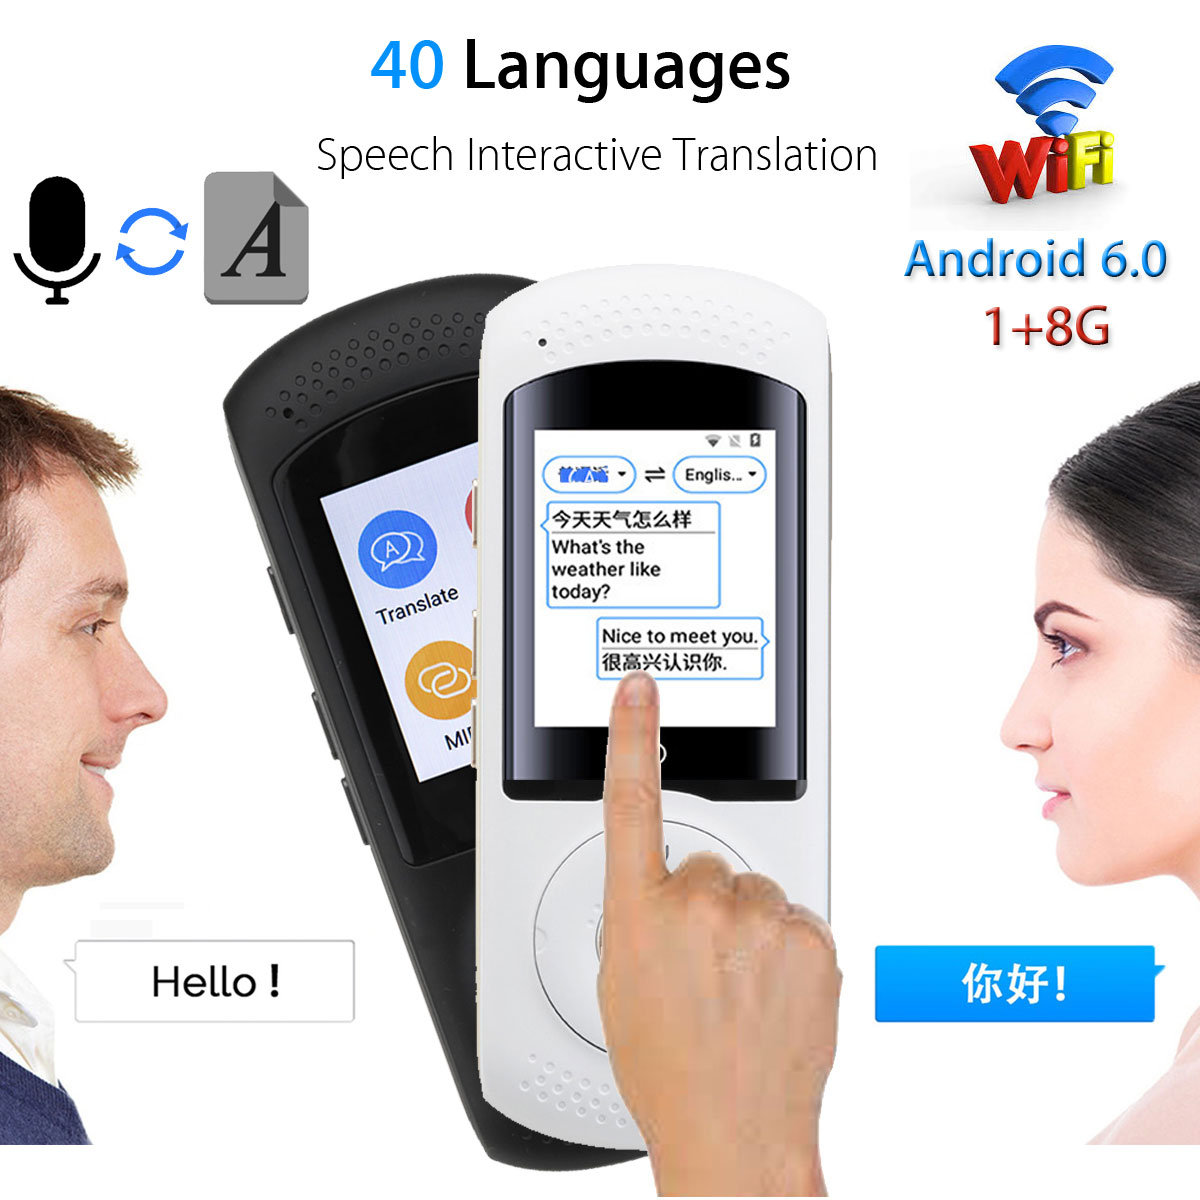 KINCO Voice Translator Support 40 Languages Intelligent AI Wifi Instant Translator LCD Screen 1+ 8G WiFi Support for Business